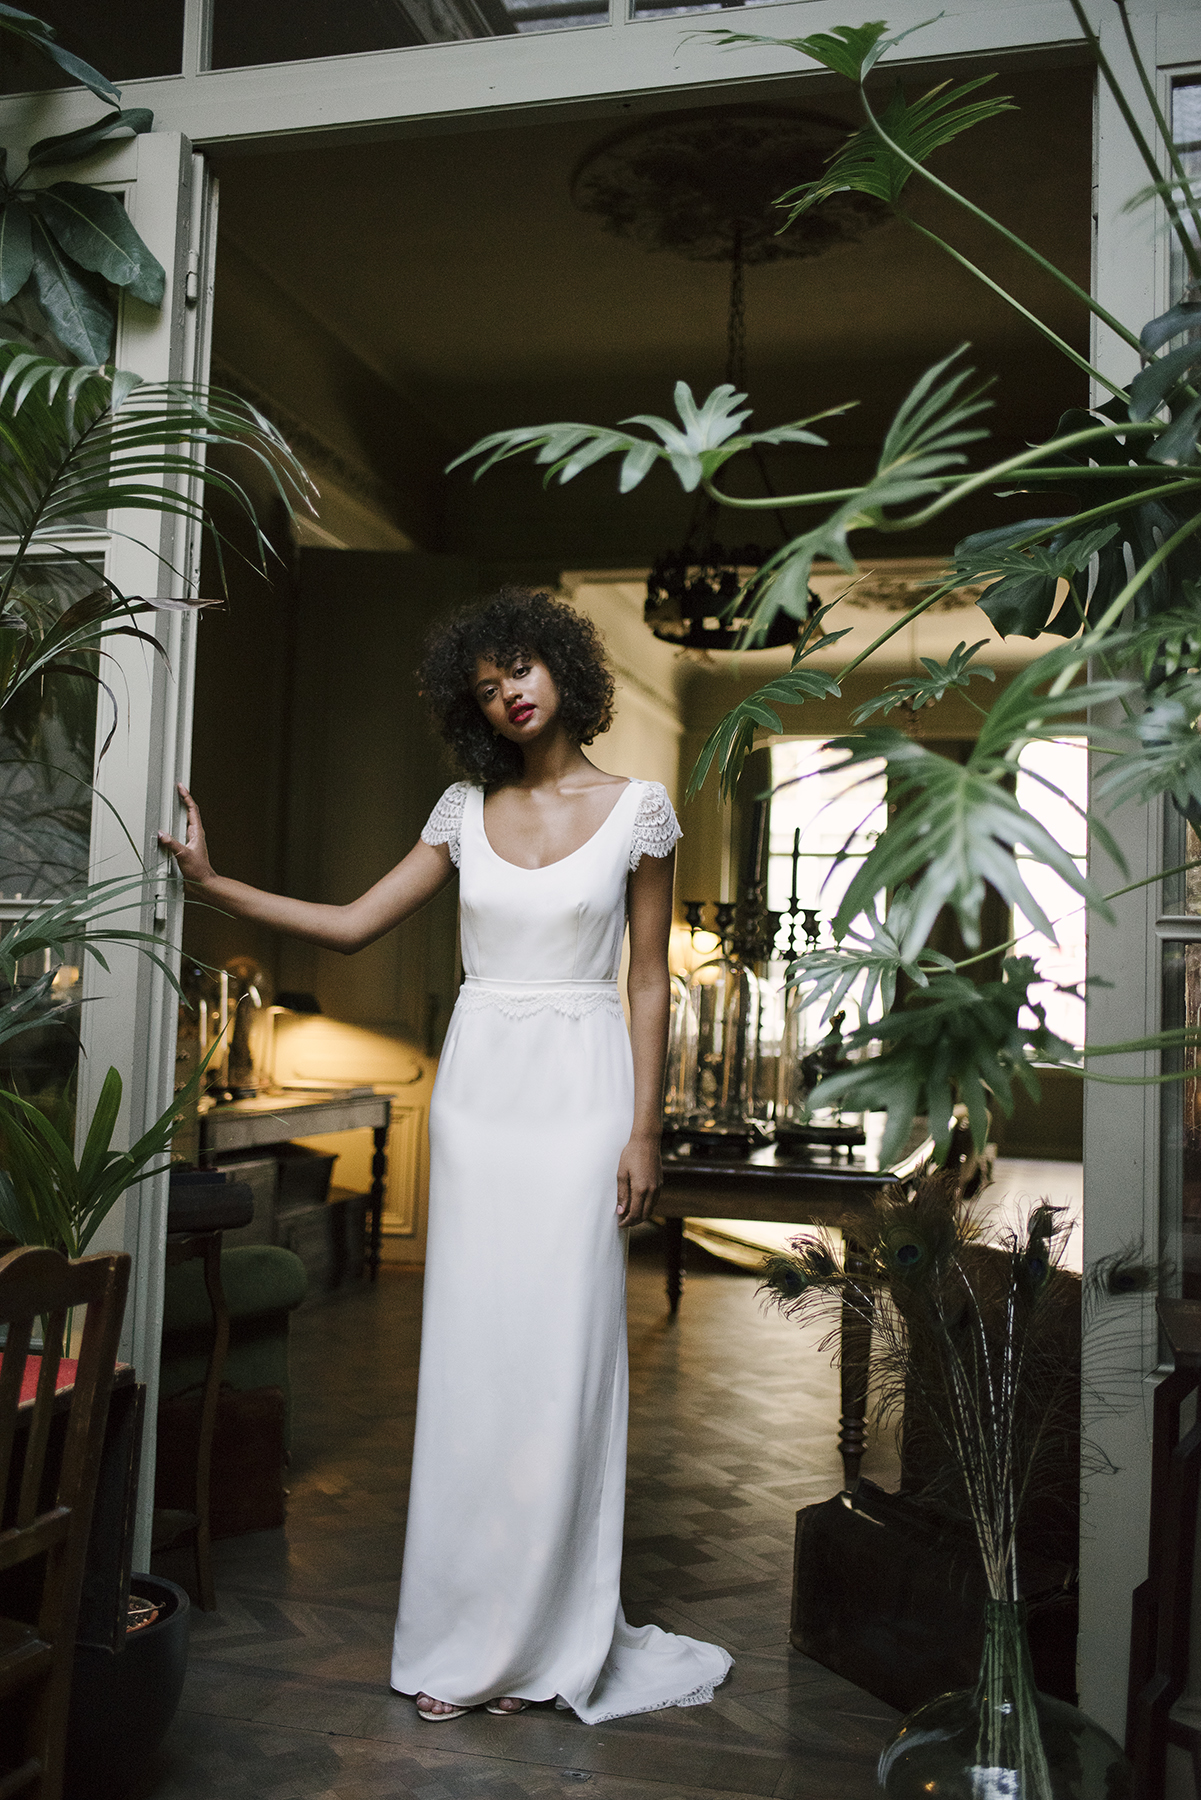 valentine-avoh-robe-mariee-dinah-dos-nu-wedding-dress-bruxelles-photo-elodie-timmermans-31.jpg